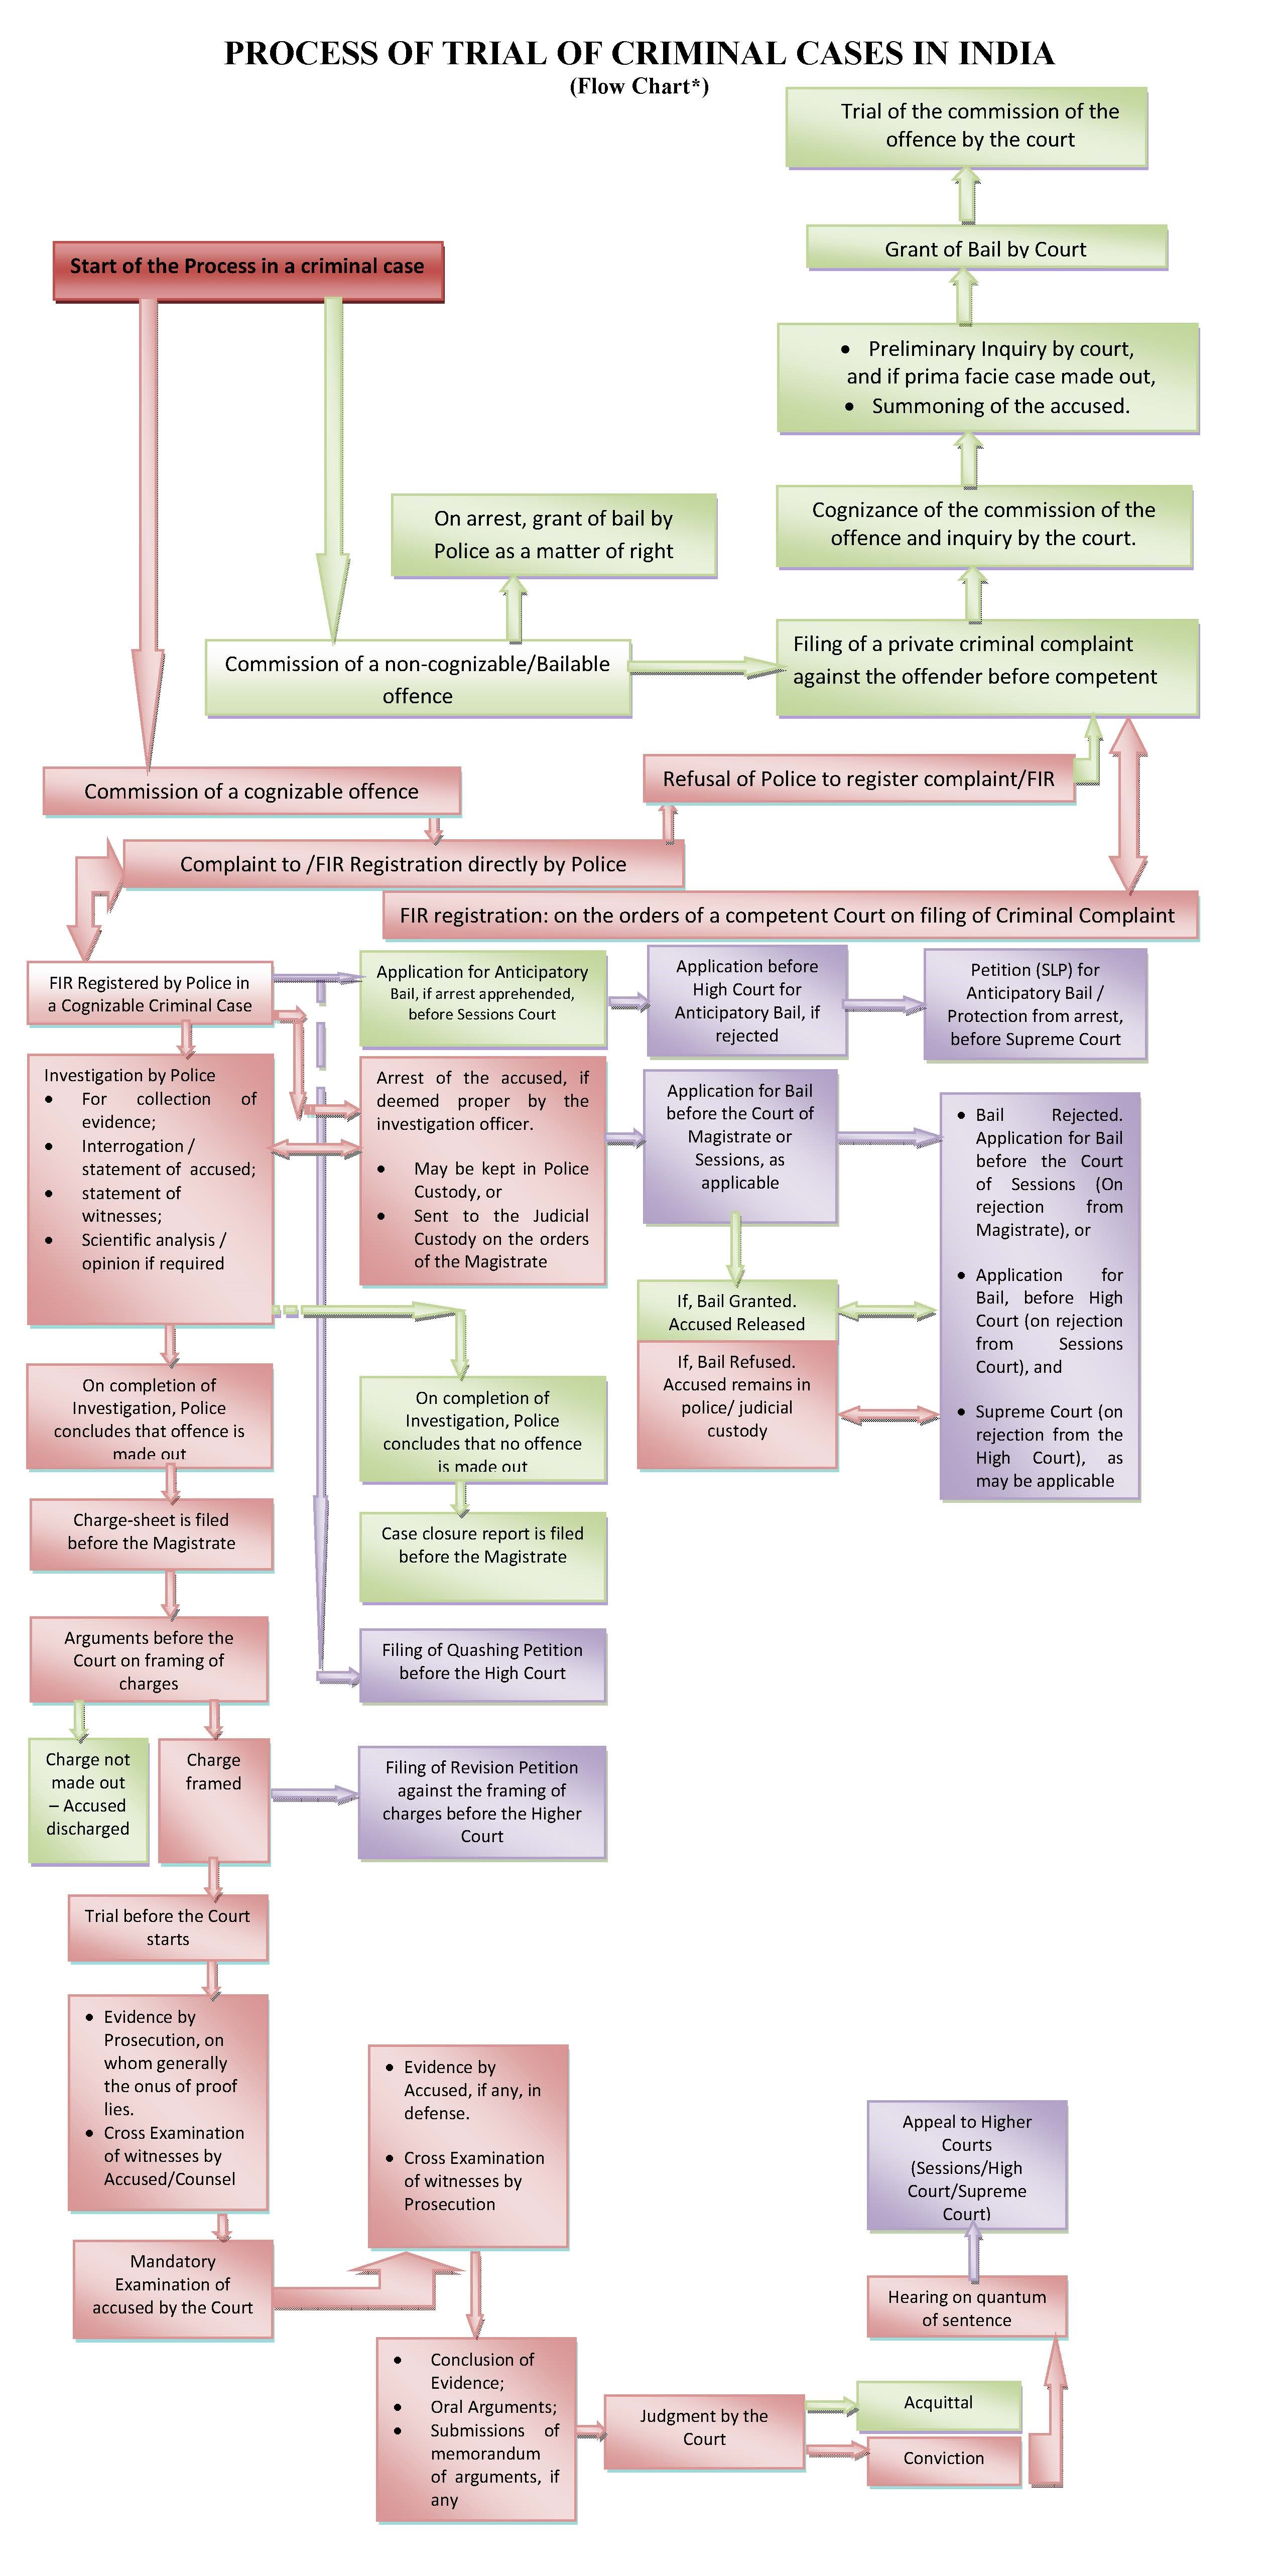 Process of Criminal Trial in India Flow Chart (2).jpg